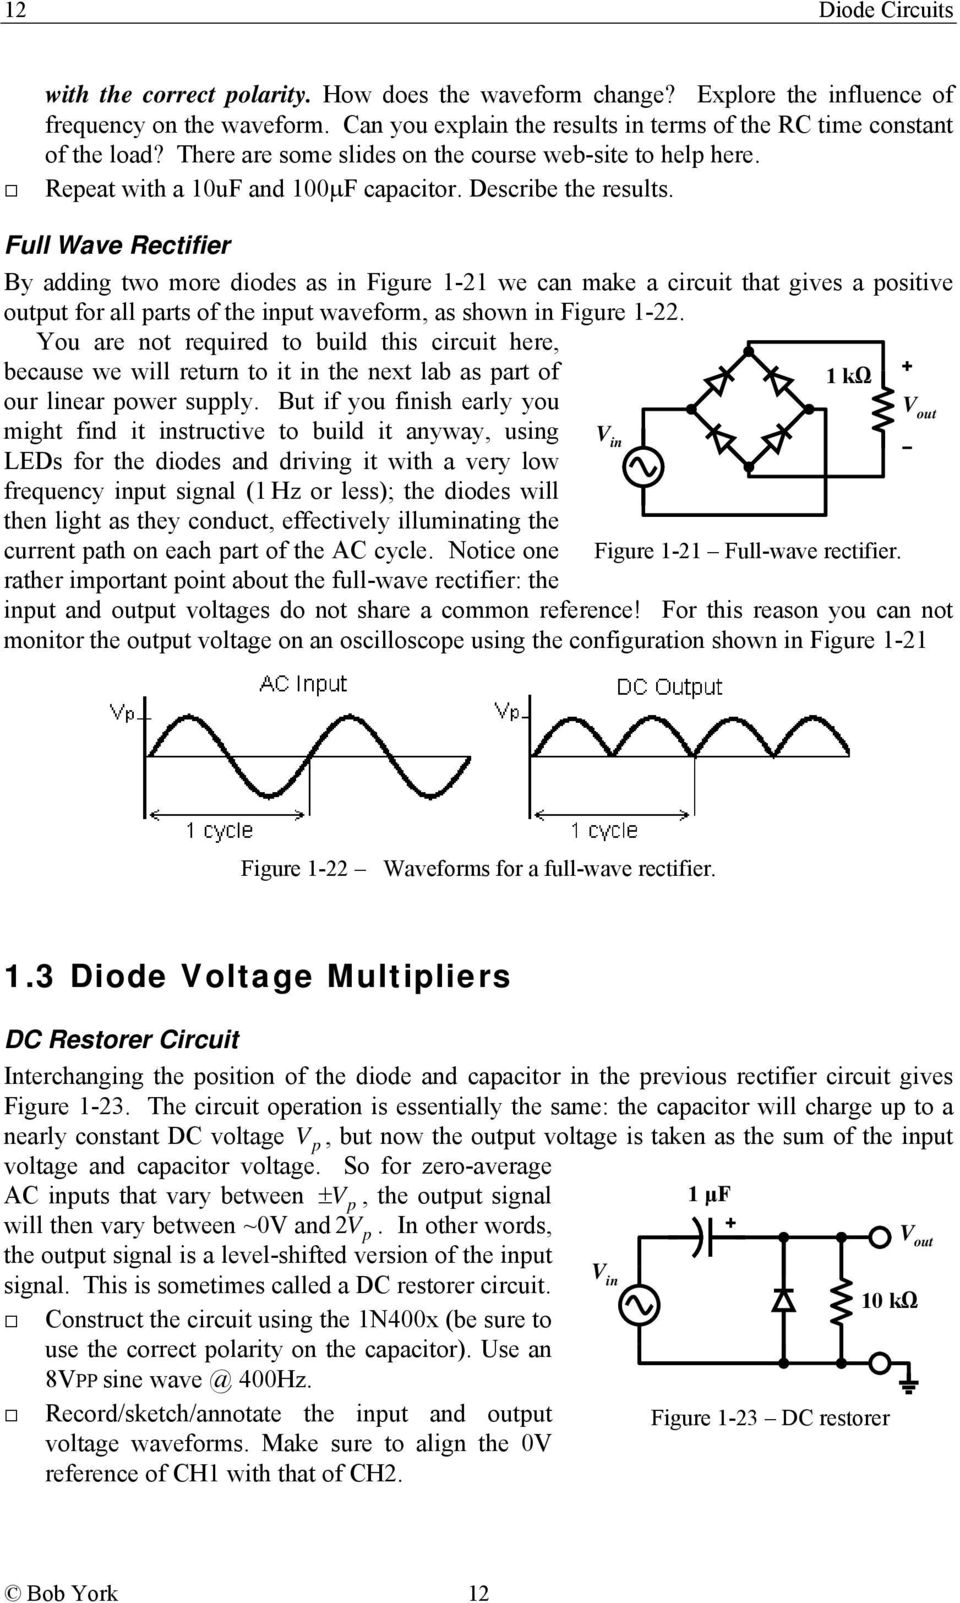 Diode Circuits Lab 1 Overview Table Of Contents Ece 2b Pdf Note All Diodes Used In Circuit Are In4007 The Transistor Is Full Wave Rectifier By Adding Two More As Figure 21 We Can